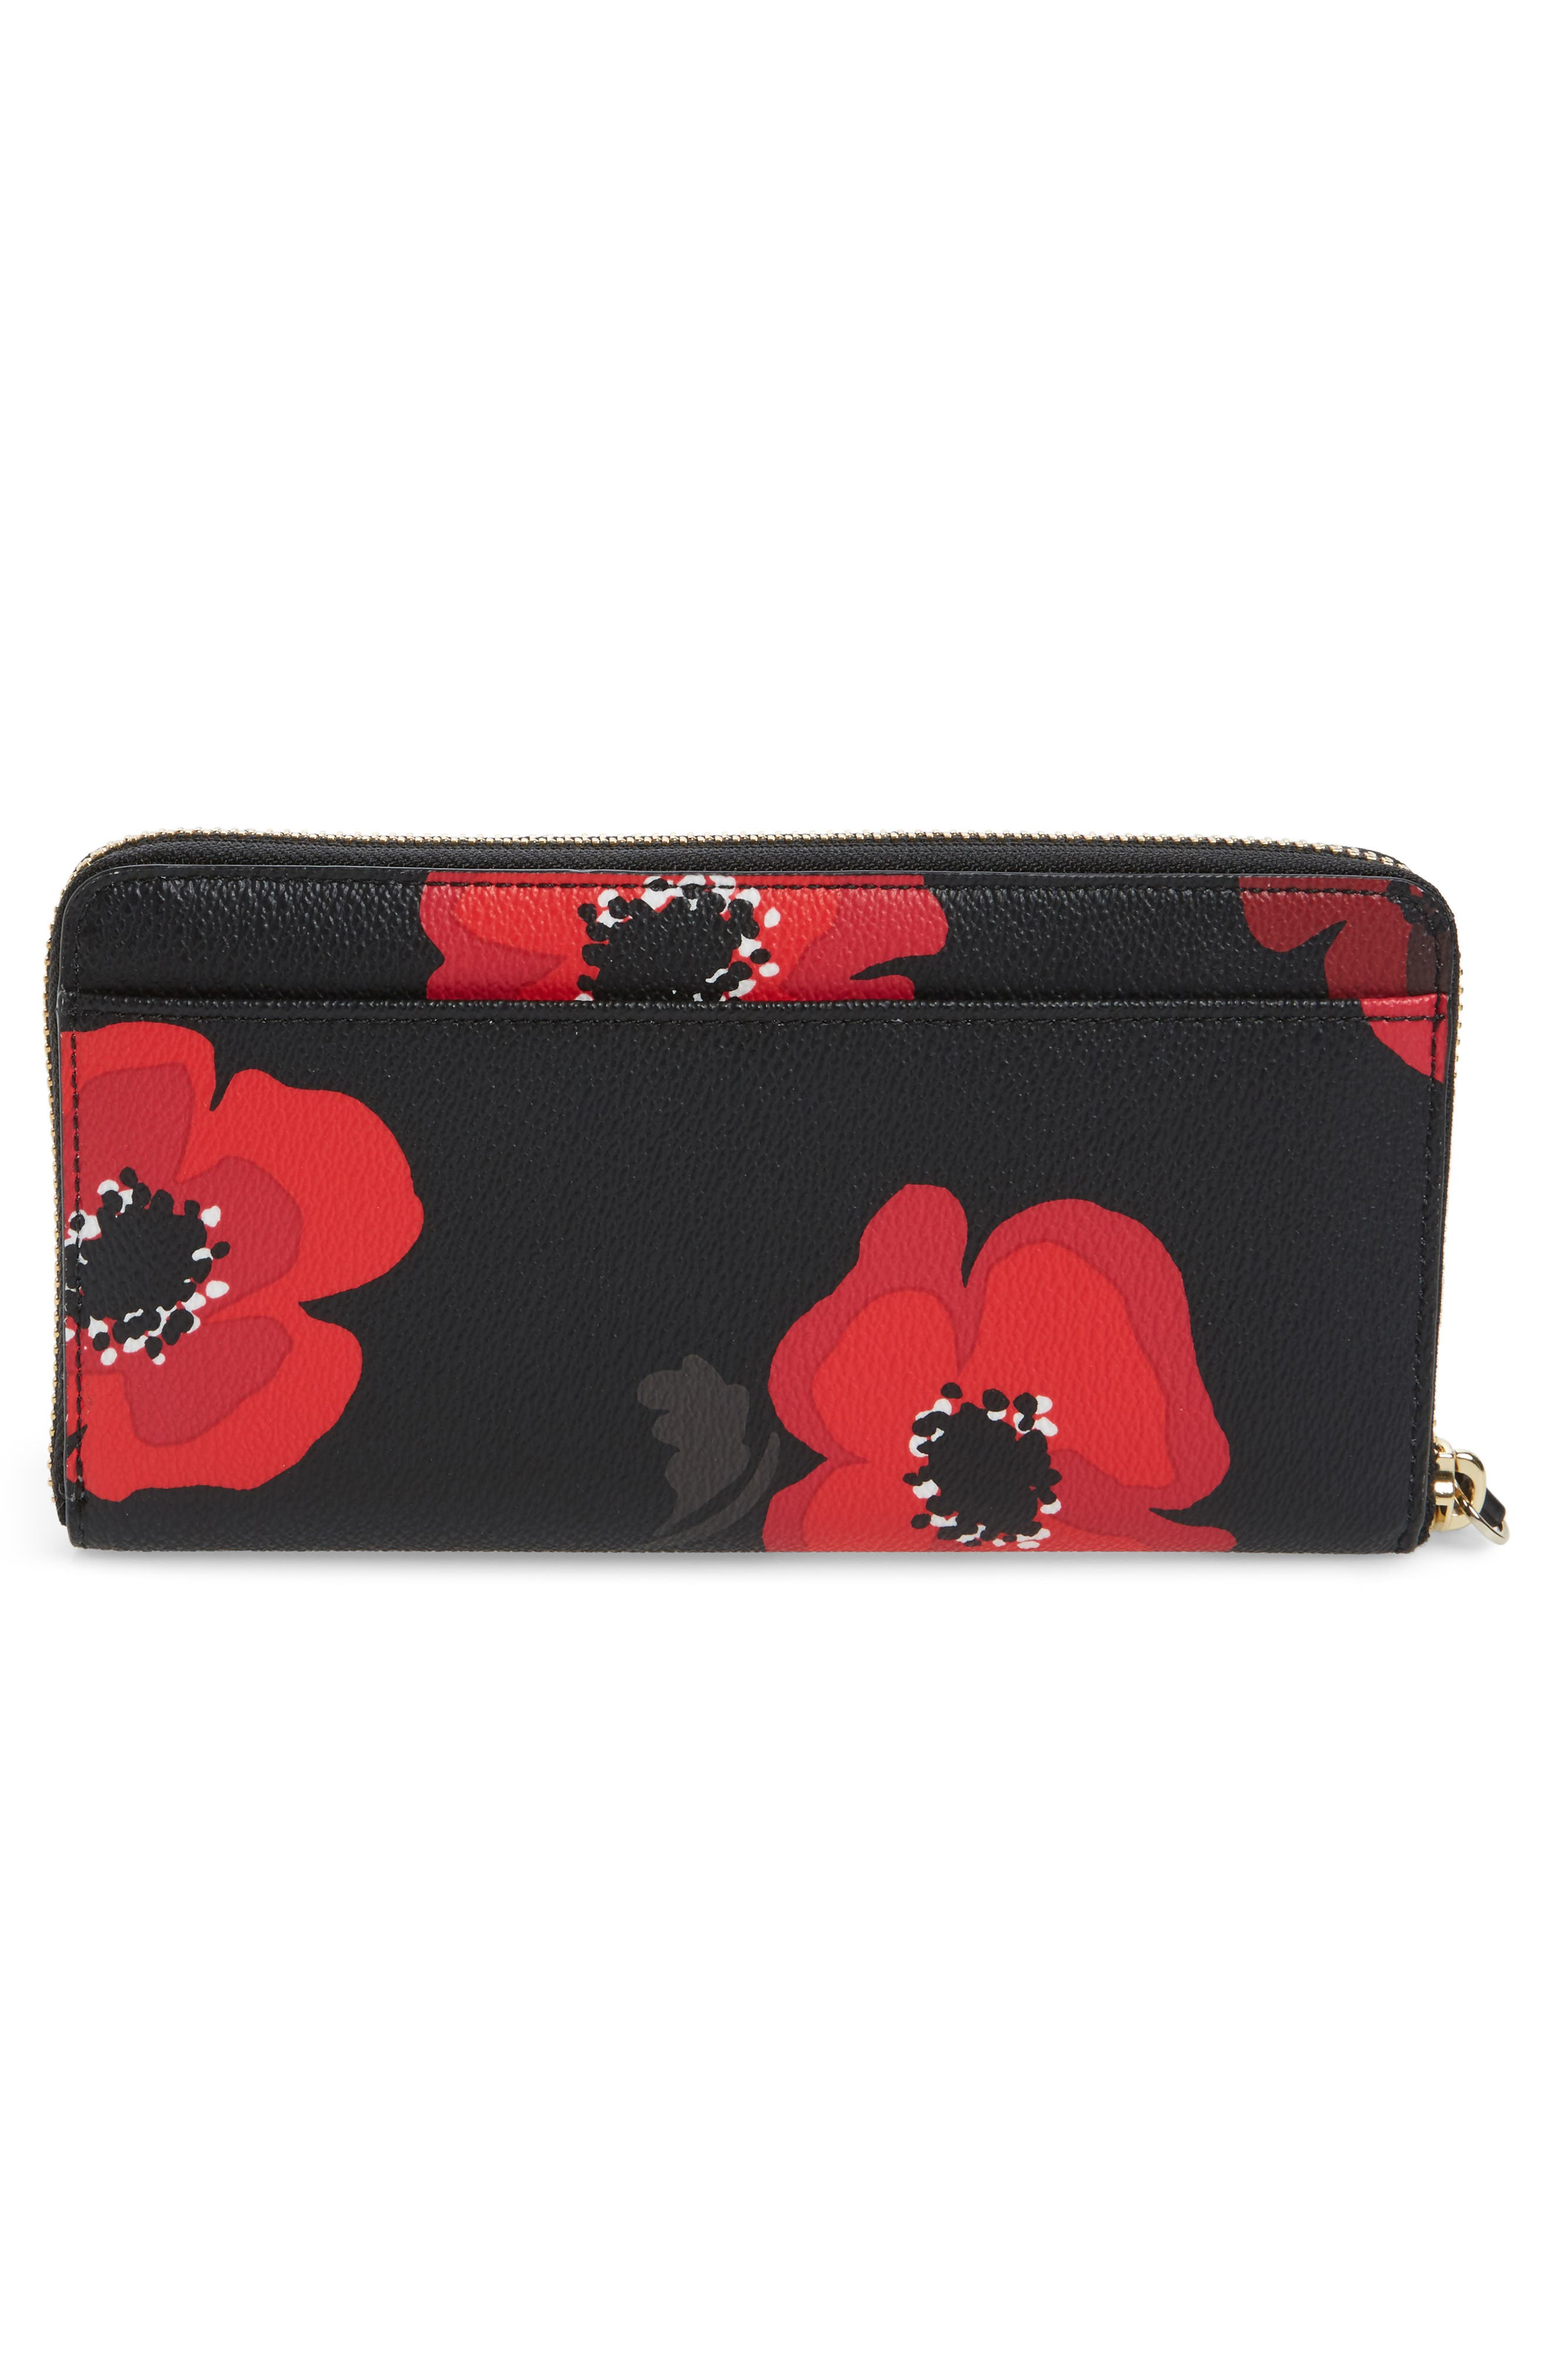 hyde lane poppy michele leather wallet,                             Alternate thumbnail 3, color,                             001